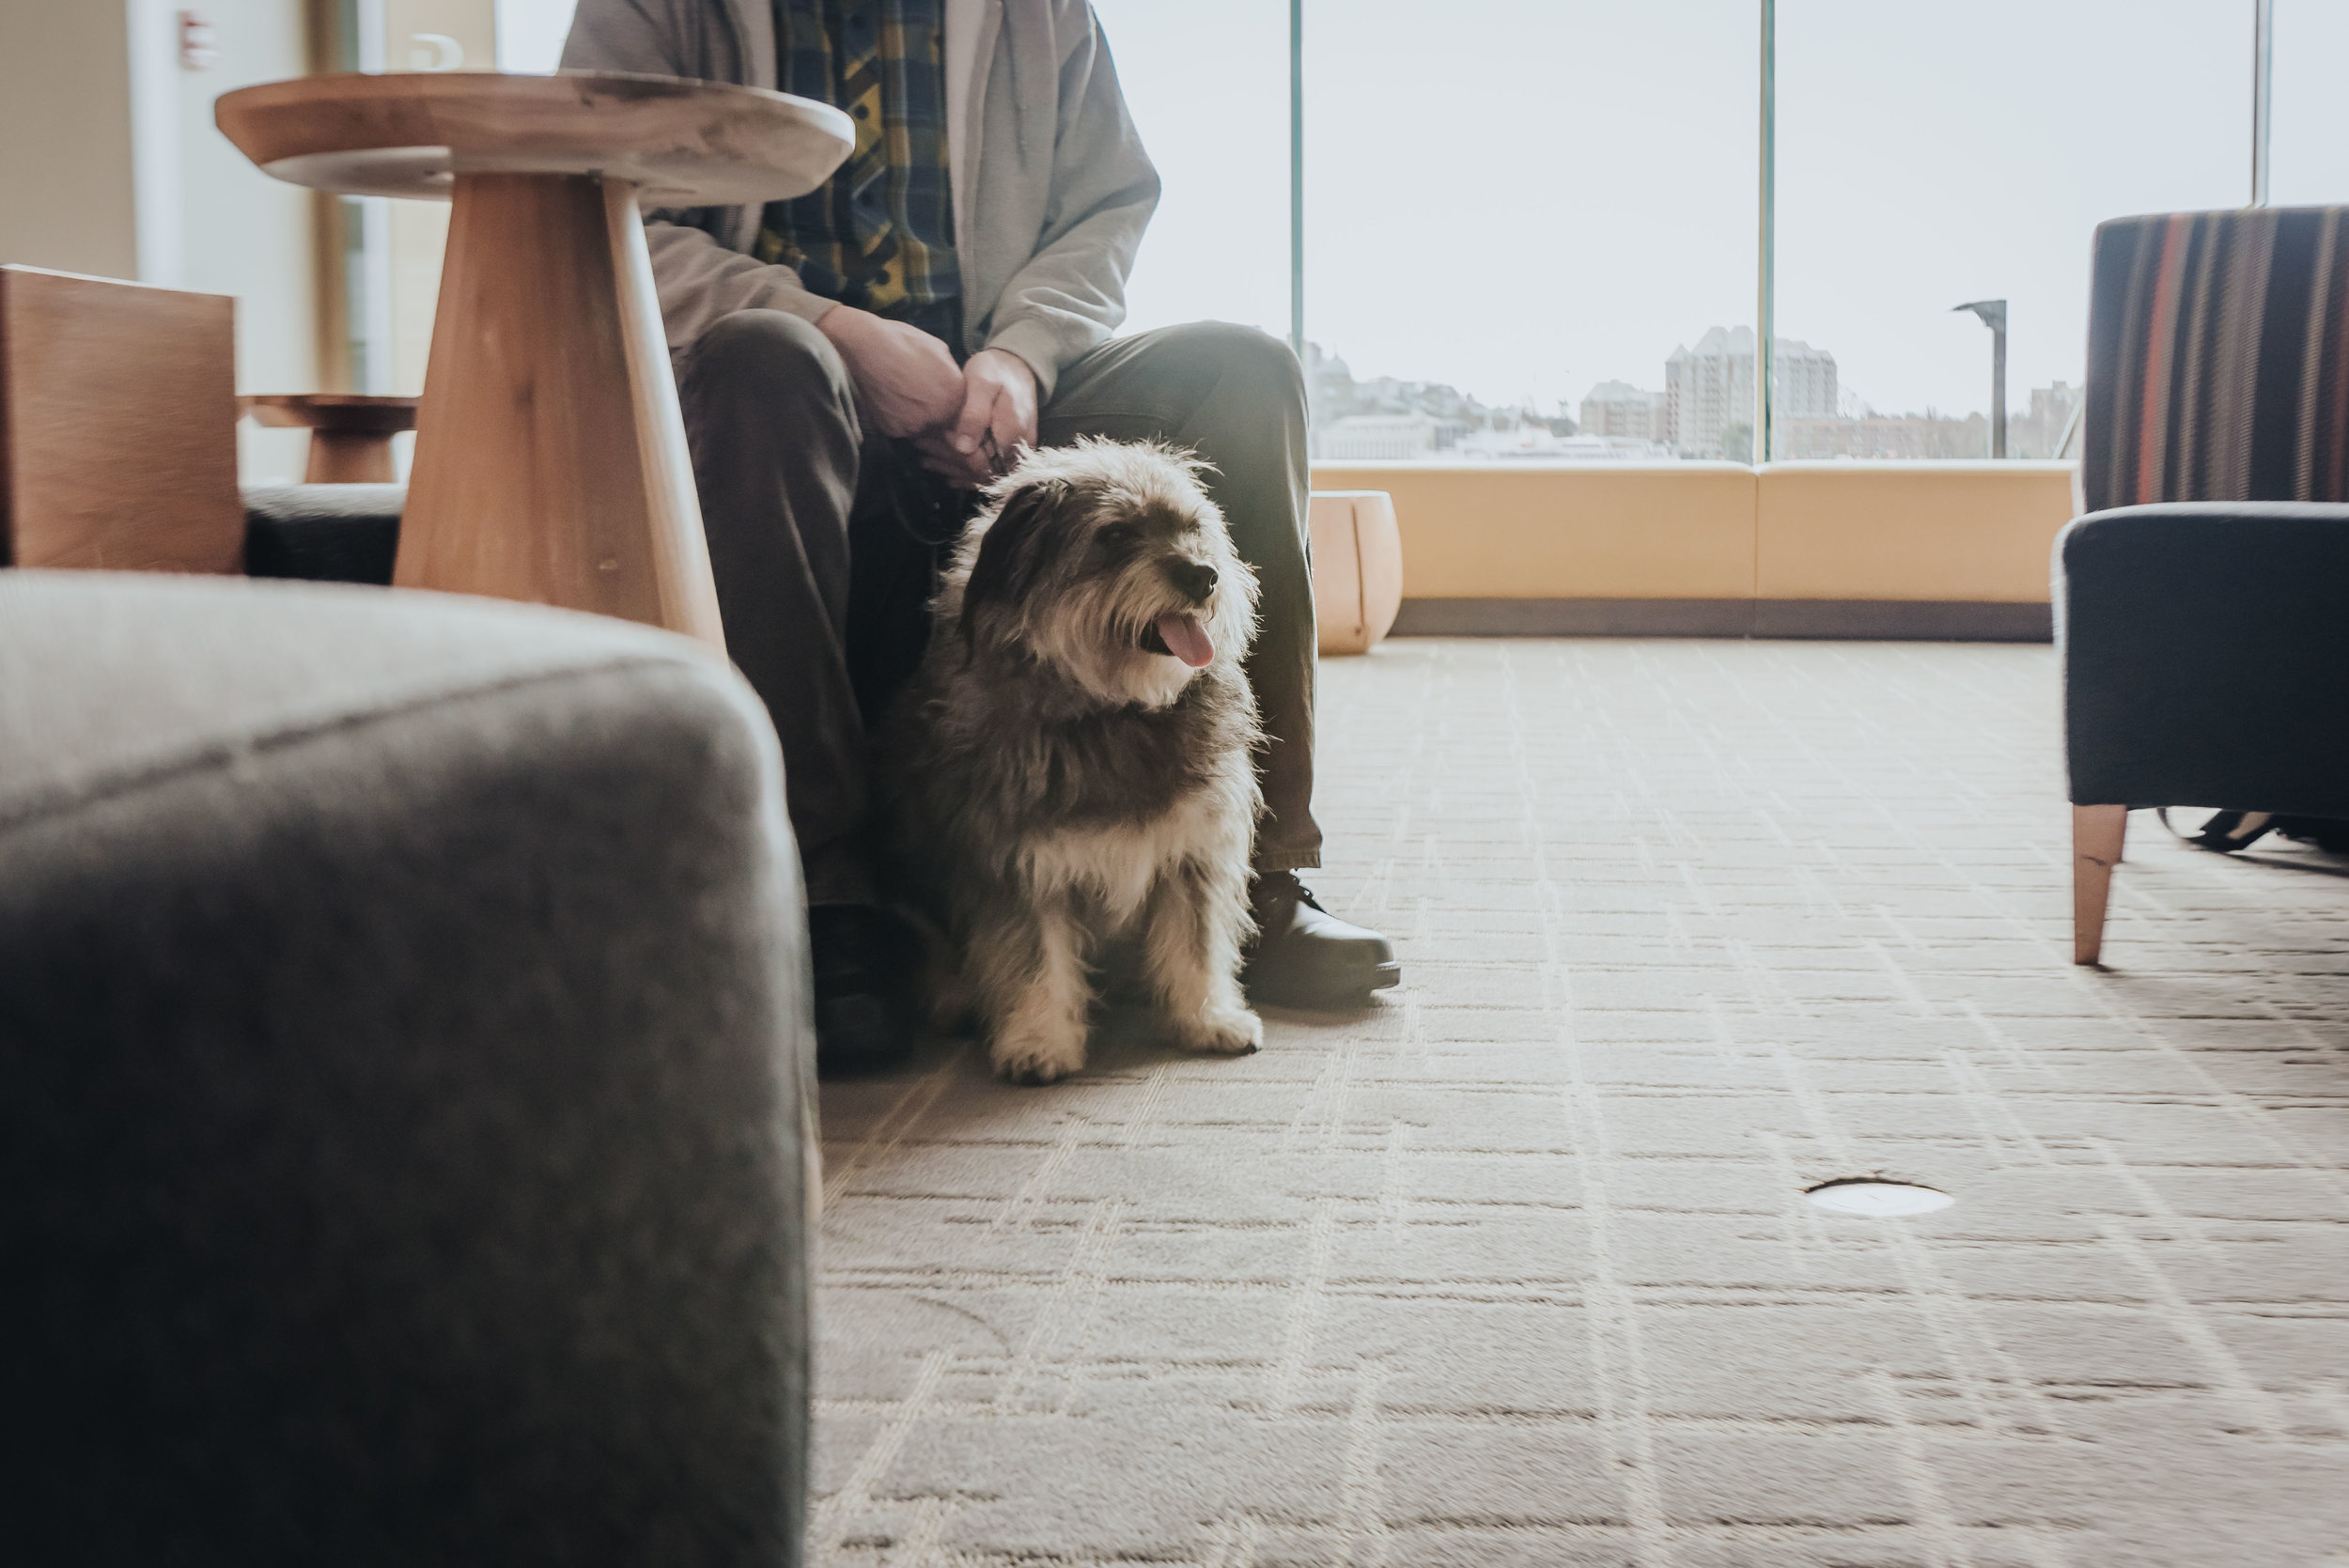 Pops and I are back in the lobby. We like people watching (and I like treats)